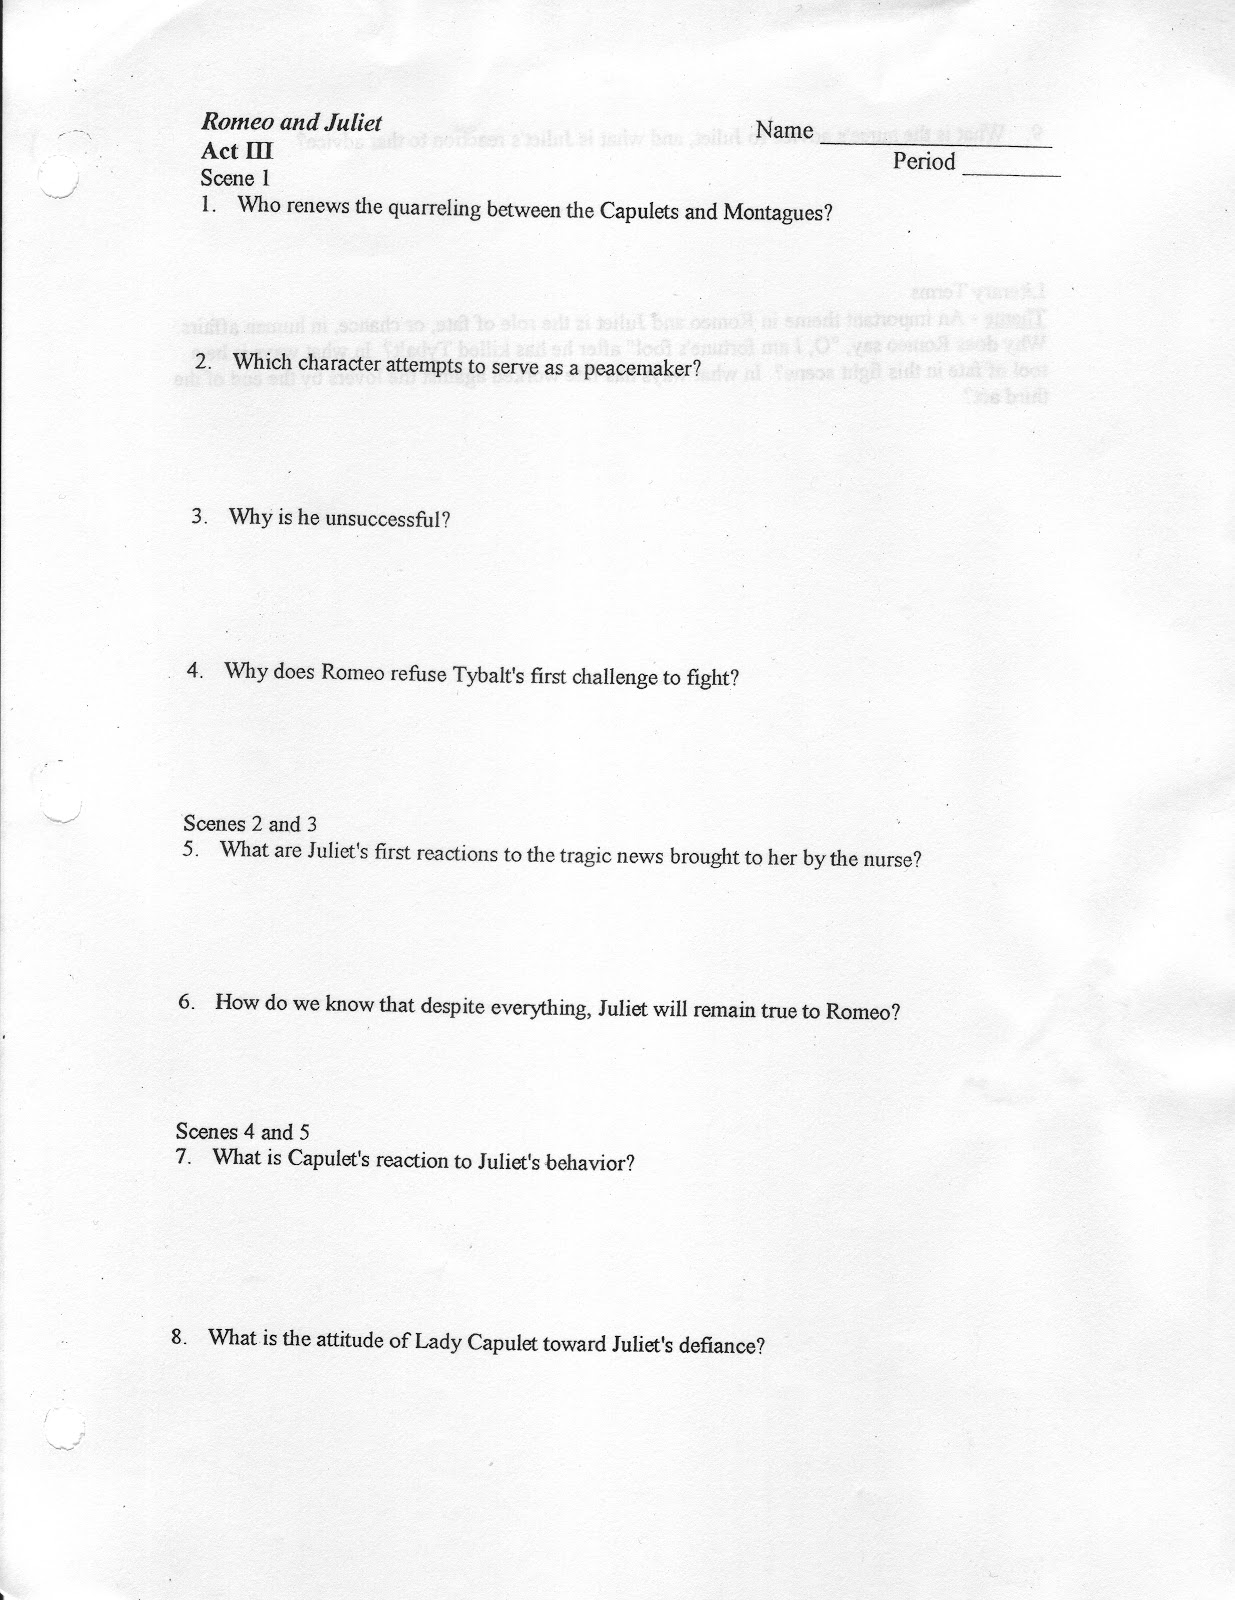 stewie s english romeo and juliet act iii study guide romeo and juliet act iii study guide